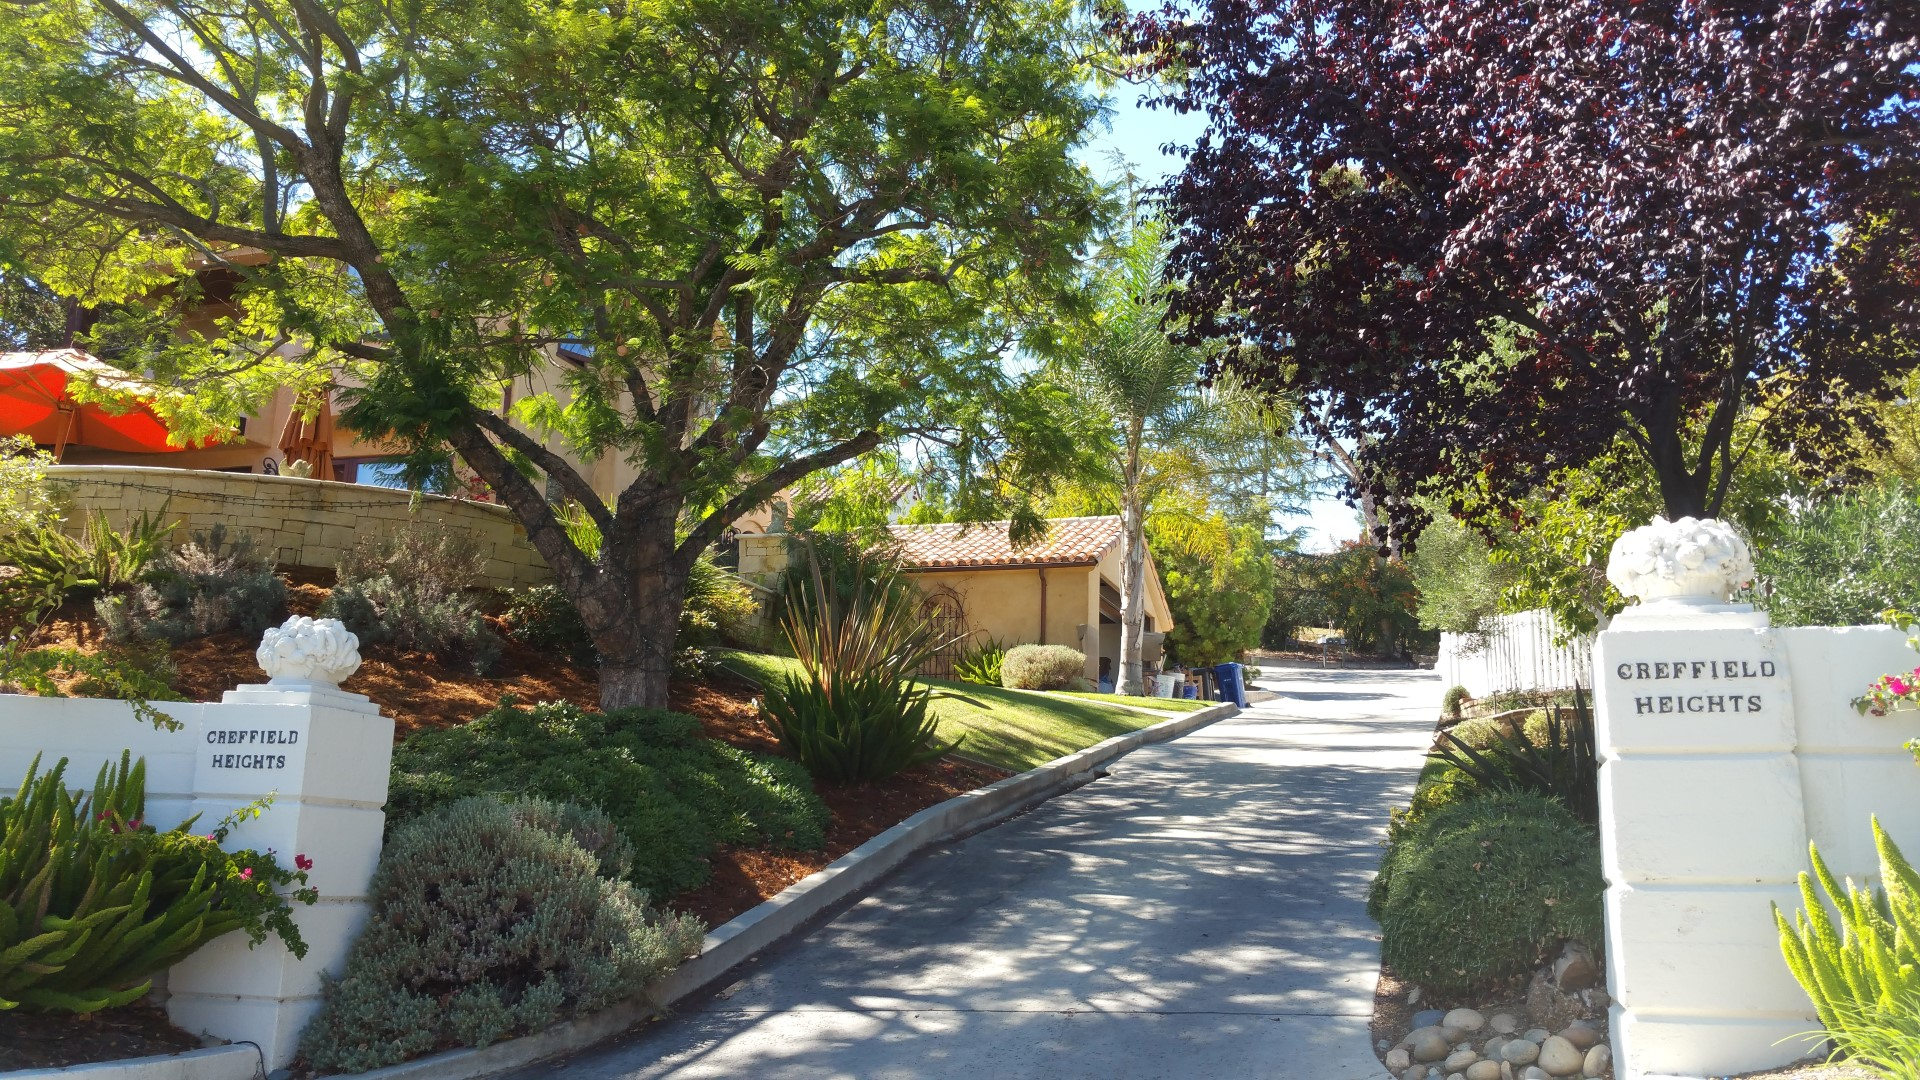 1 Creffield Heights on San Benito in Los Gatos1 - Creffield Heights and San Benito Avenue area